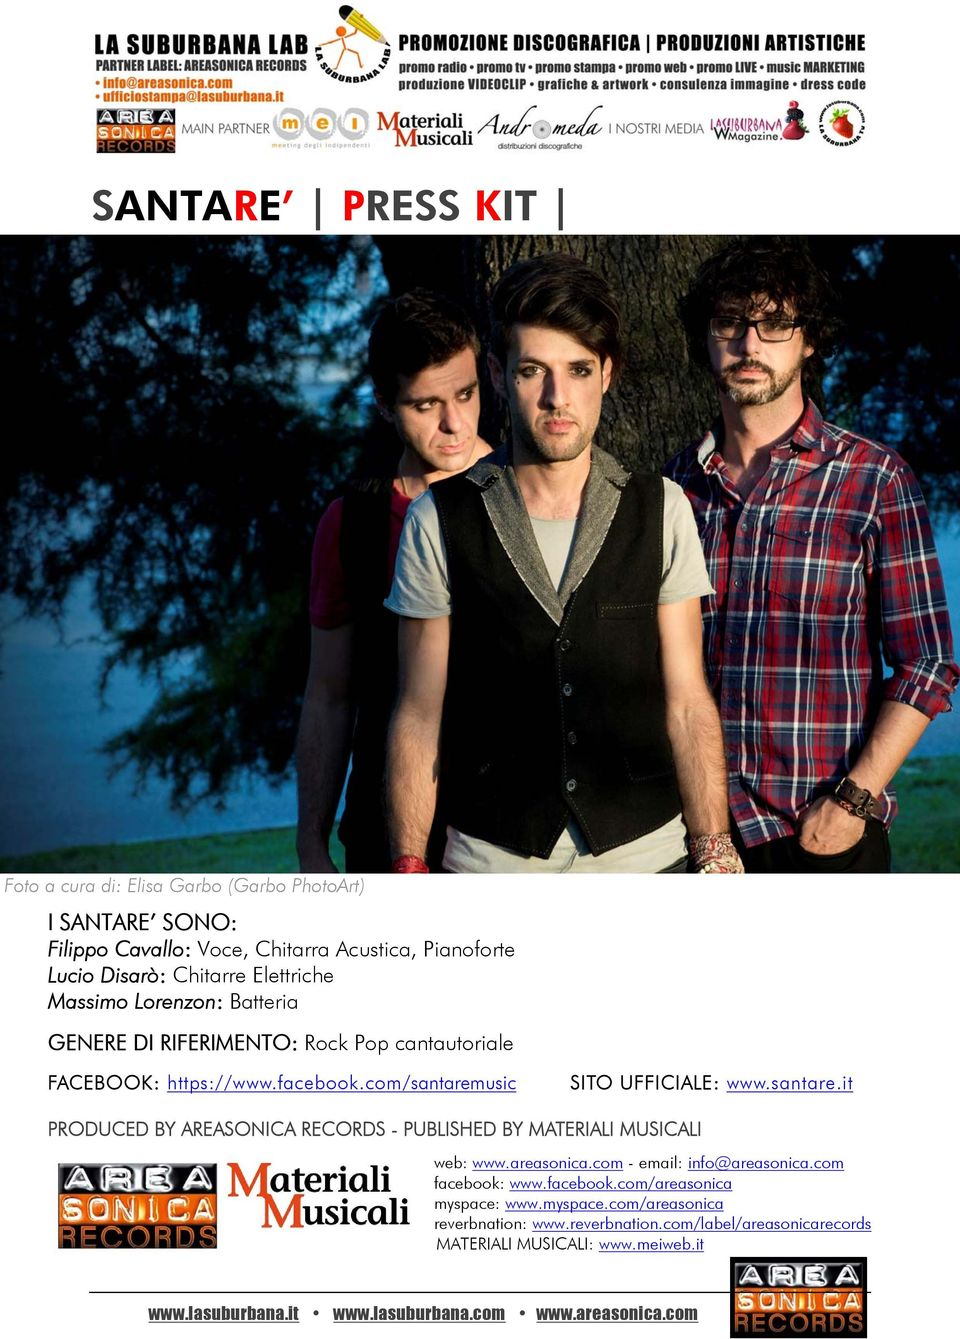 com/santaremusic SITO UFFICIALE: www.santare.it PRODUCED BY AREASONICA RECORDS - PUBLISHED BY MATERIALI MUSICALI web: www.areasonica.